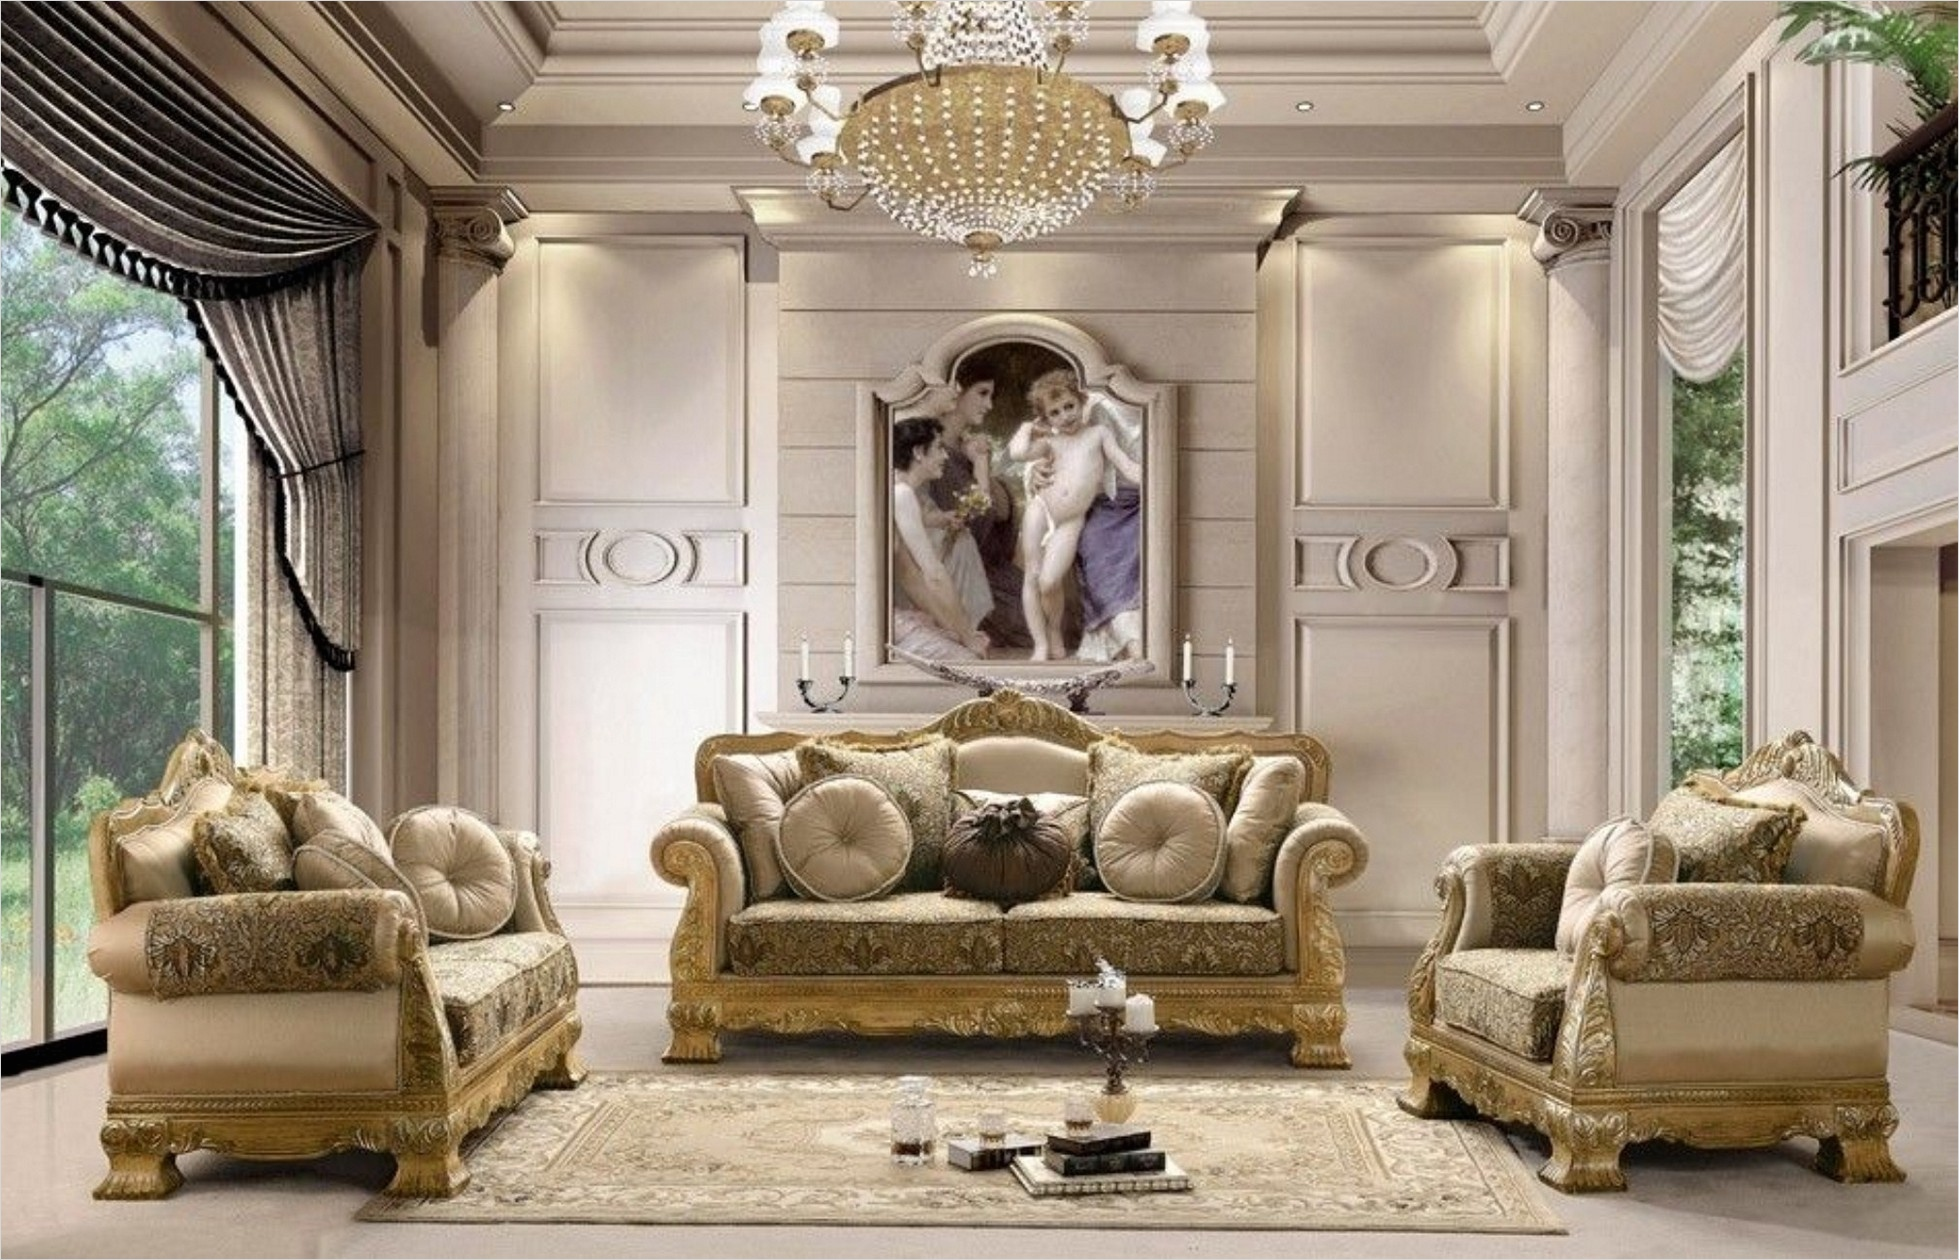 45 Amazing Ideas Country Chic Living Room 68 55 French Country Living Room Designs Ideas Gallery 8